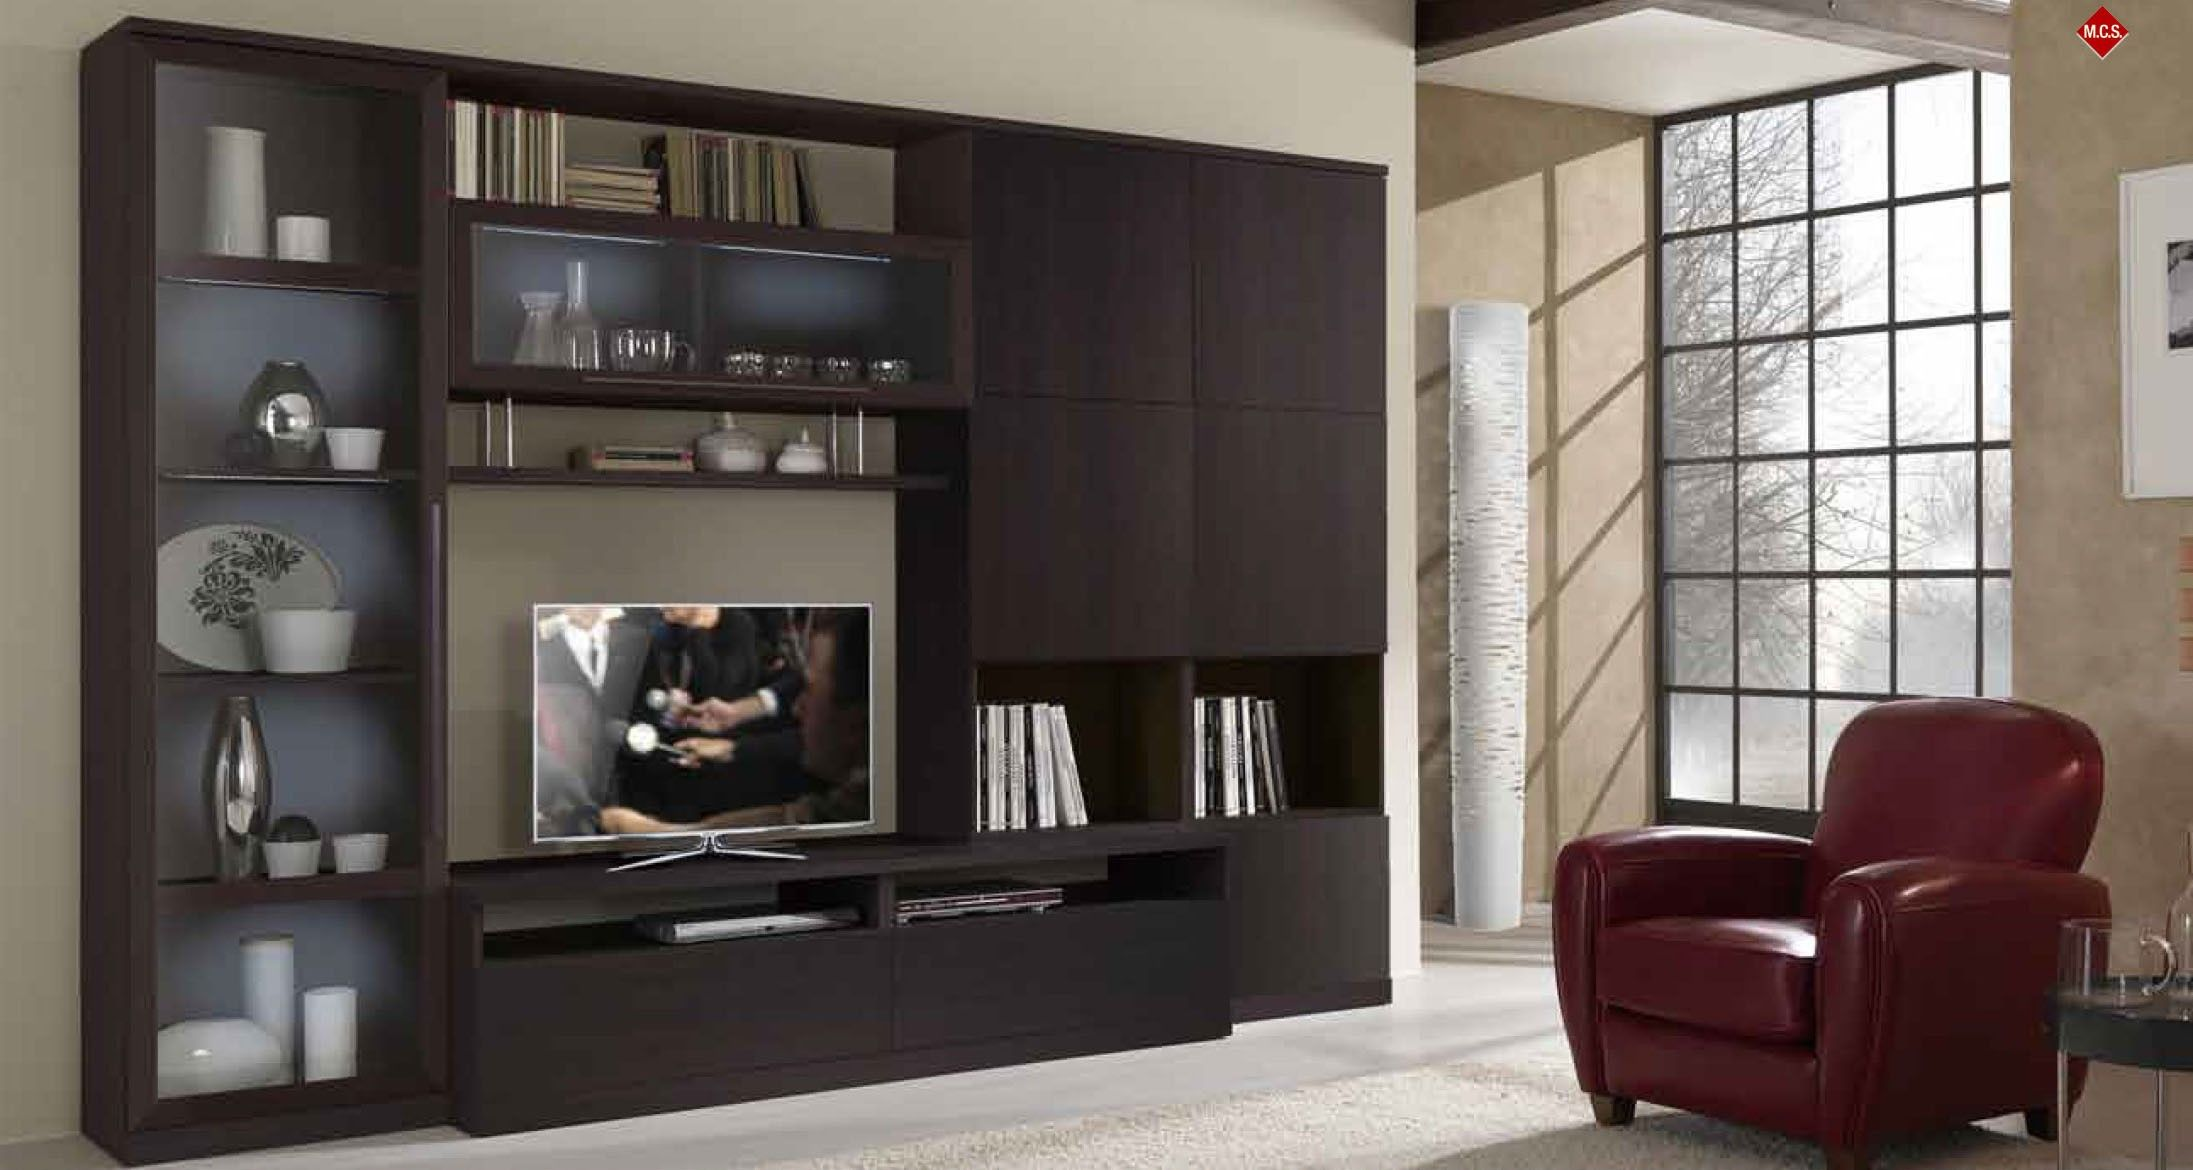 Home Built In Bar And Wall Unit Ideas Magnificent Living Room Contemporary Stylish Modern Design With Dark